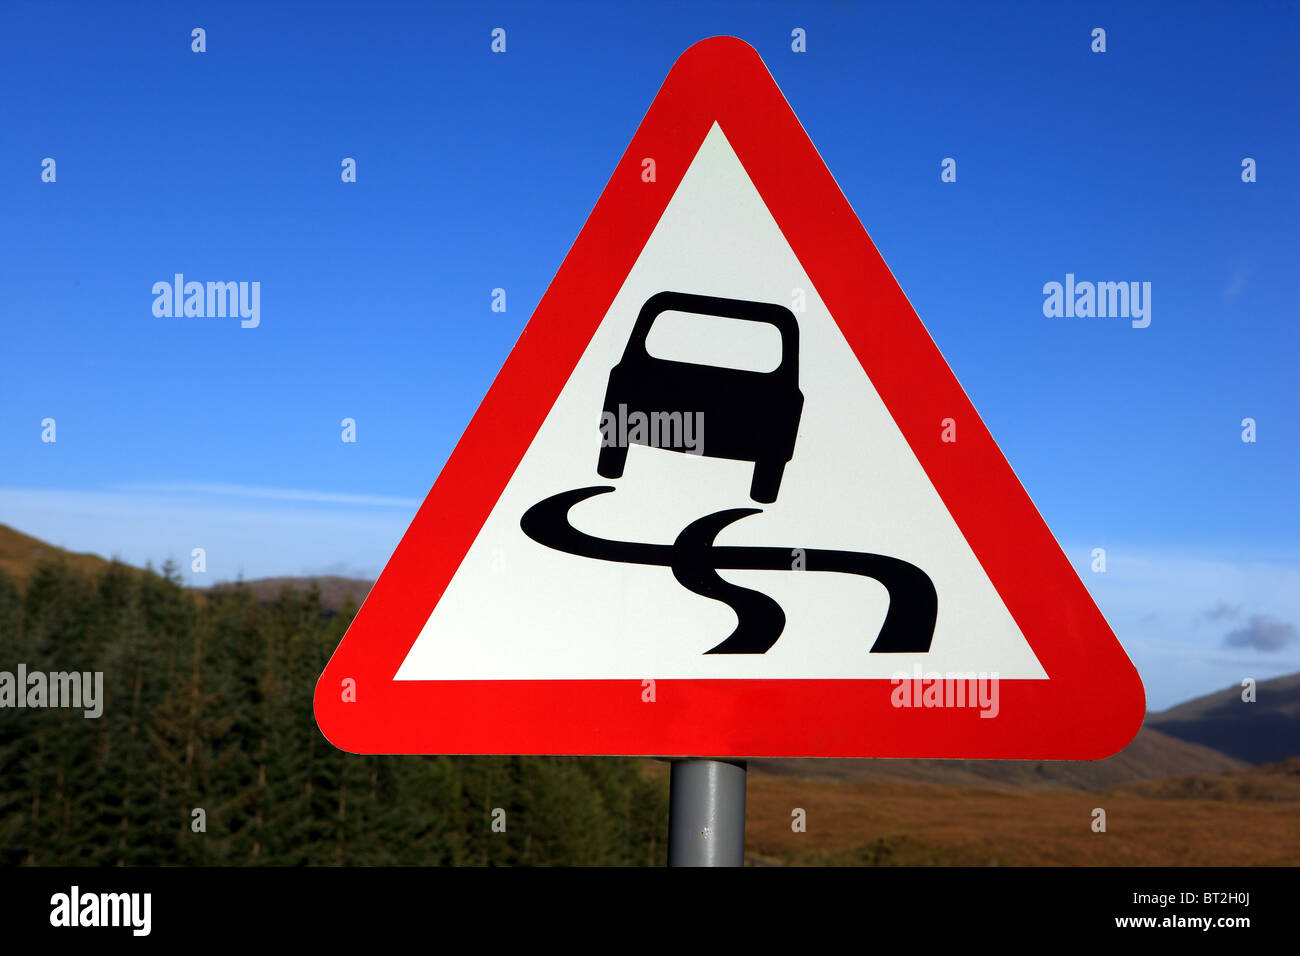 Slippery road sign in the UK - Stock Image